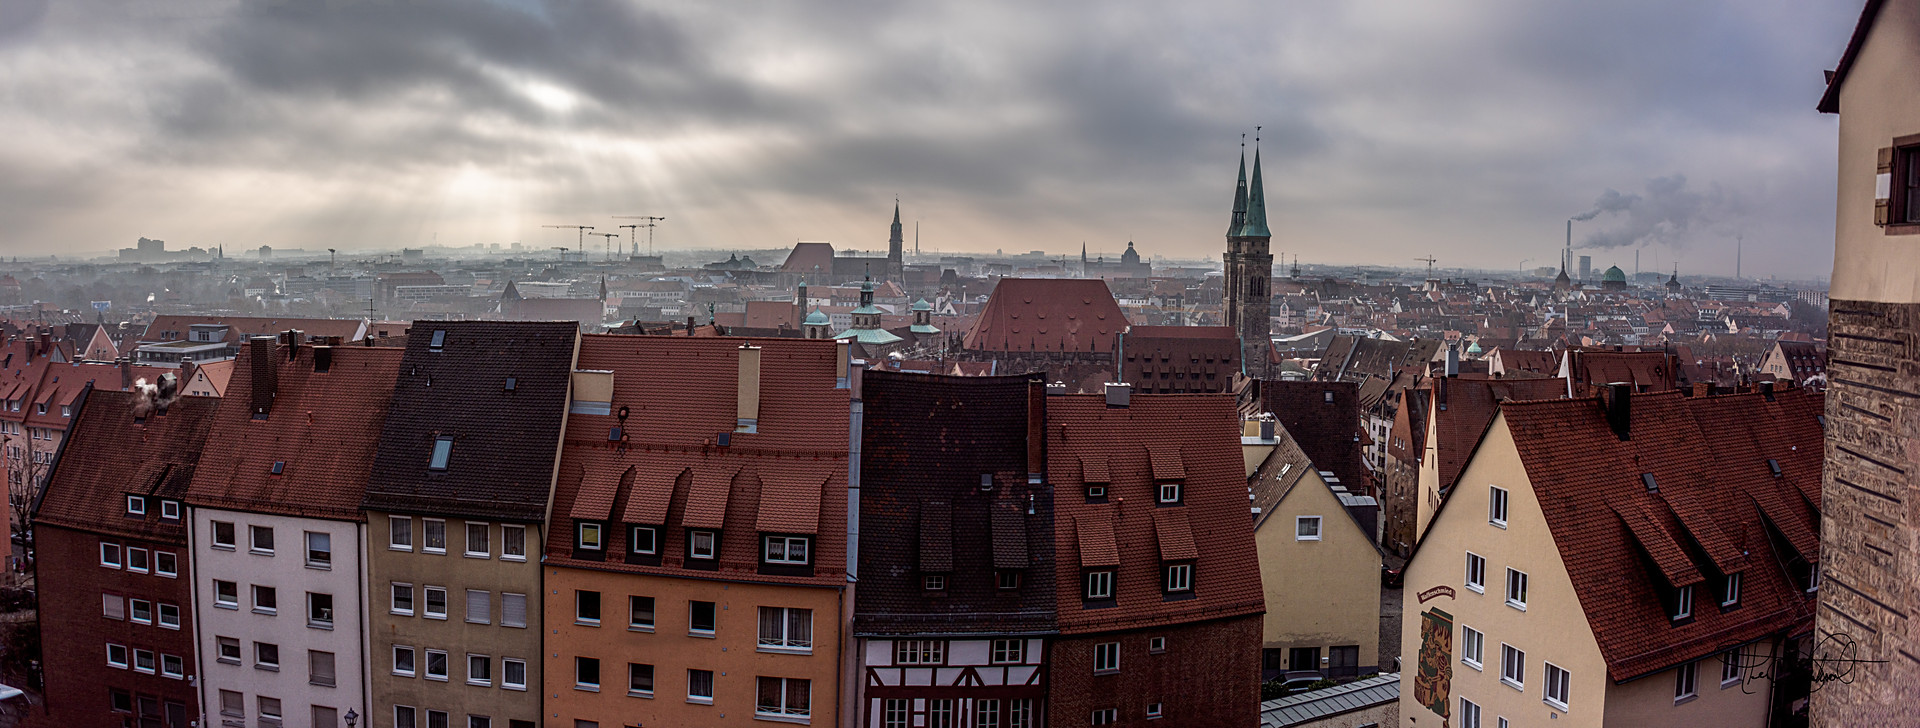 A Panorama (4 shots stiched together) looking south over Nuremberg from the Imperial Castle the highest point in Nuremberg Germany.